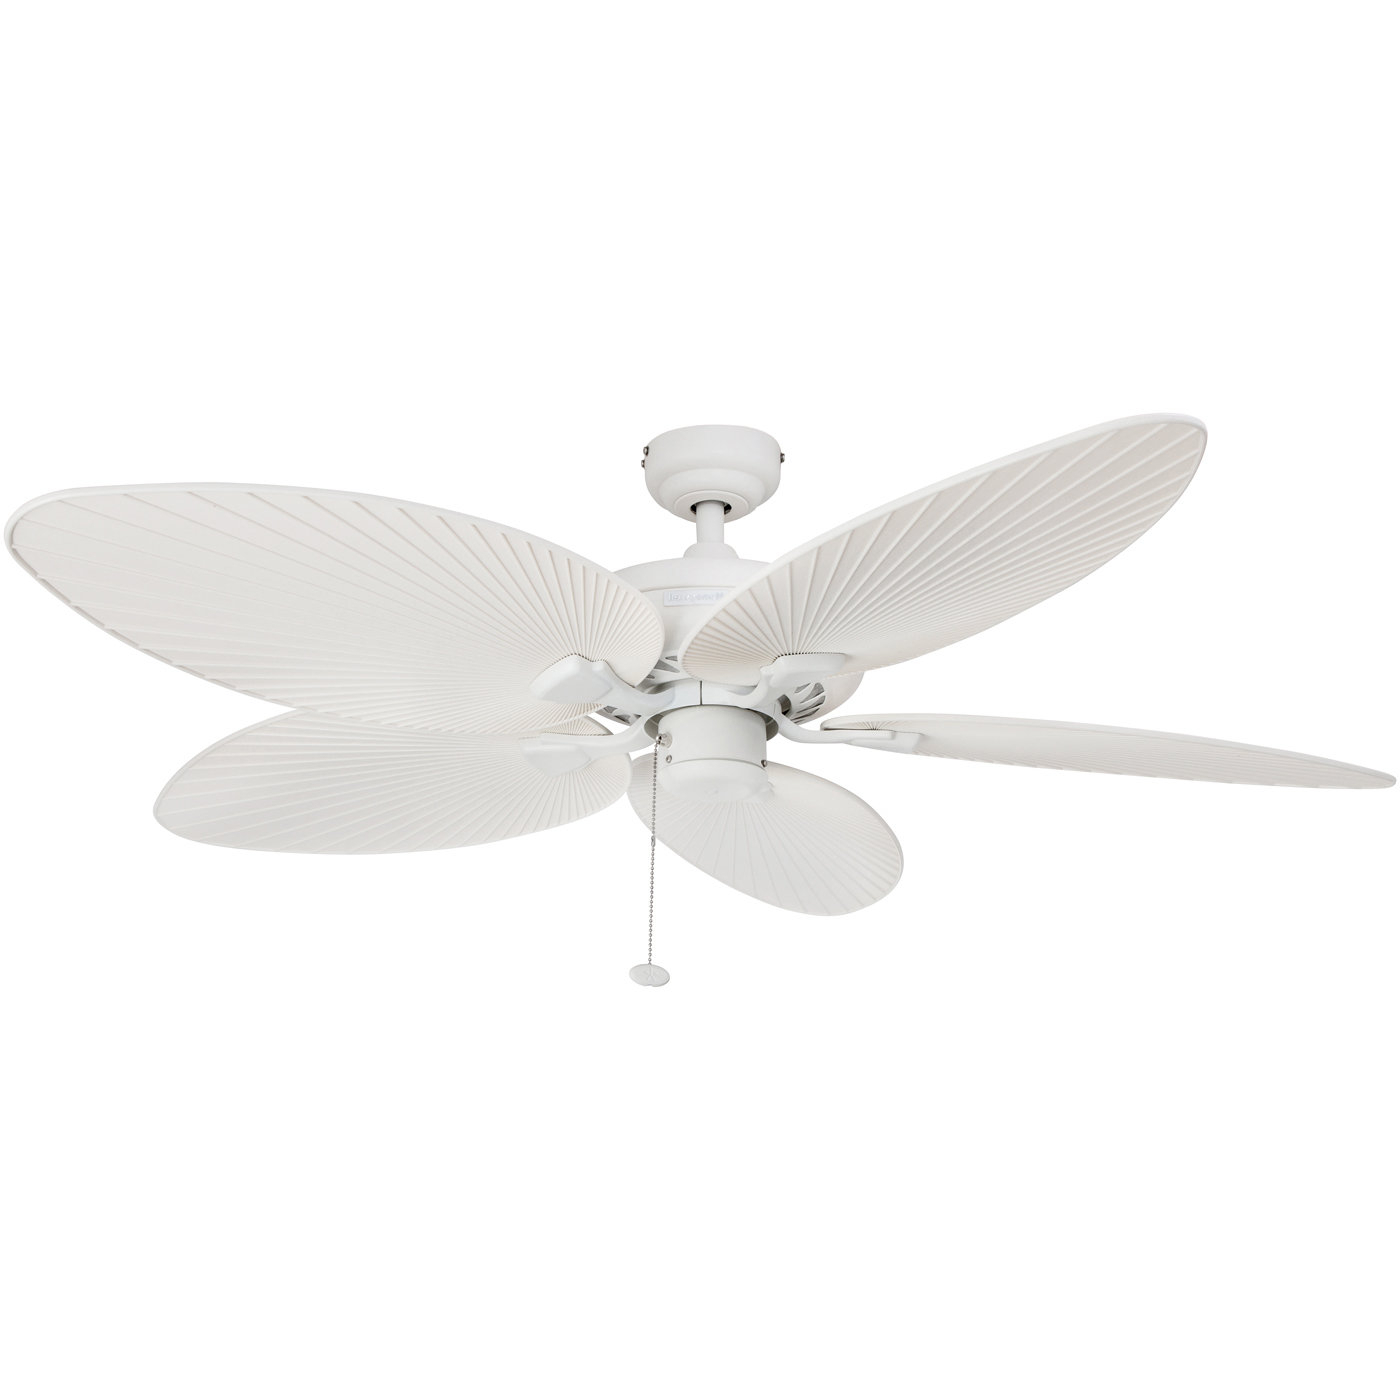 "52"" Mccarthy 5 Blade Ceiling Fan With Favorite Mccarthy 5 Blade Ceiling Fans (Gallery 2 of 20)"